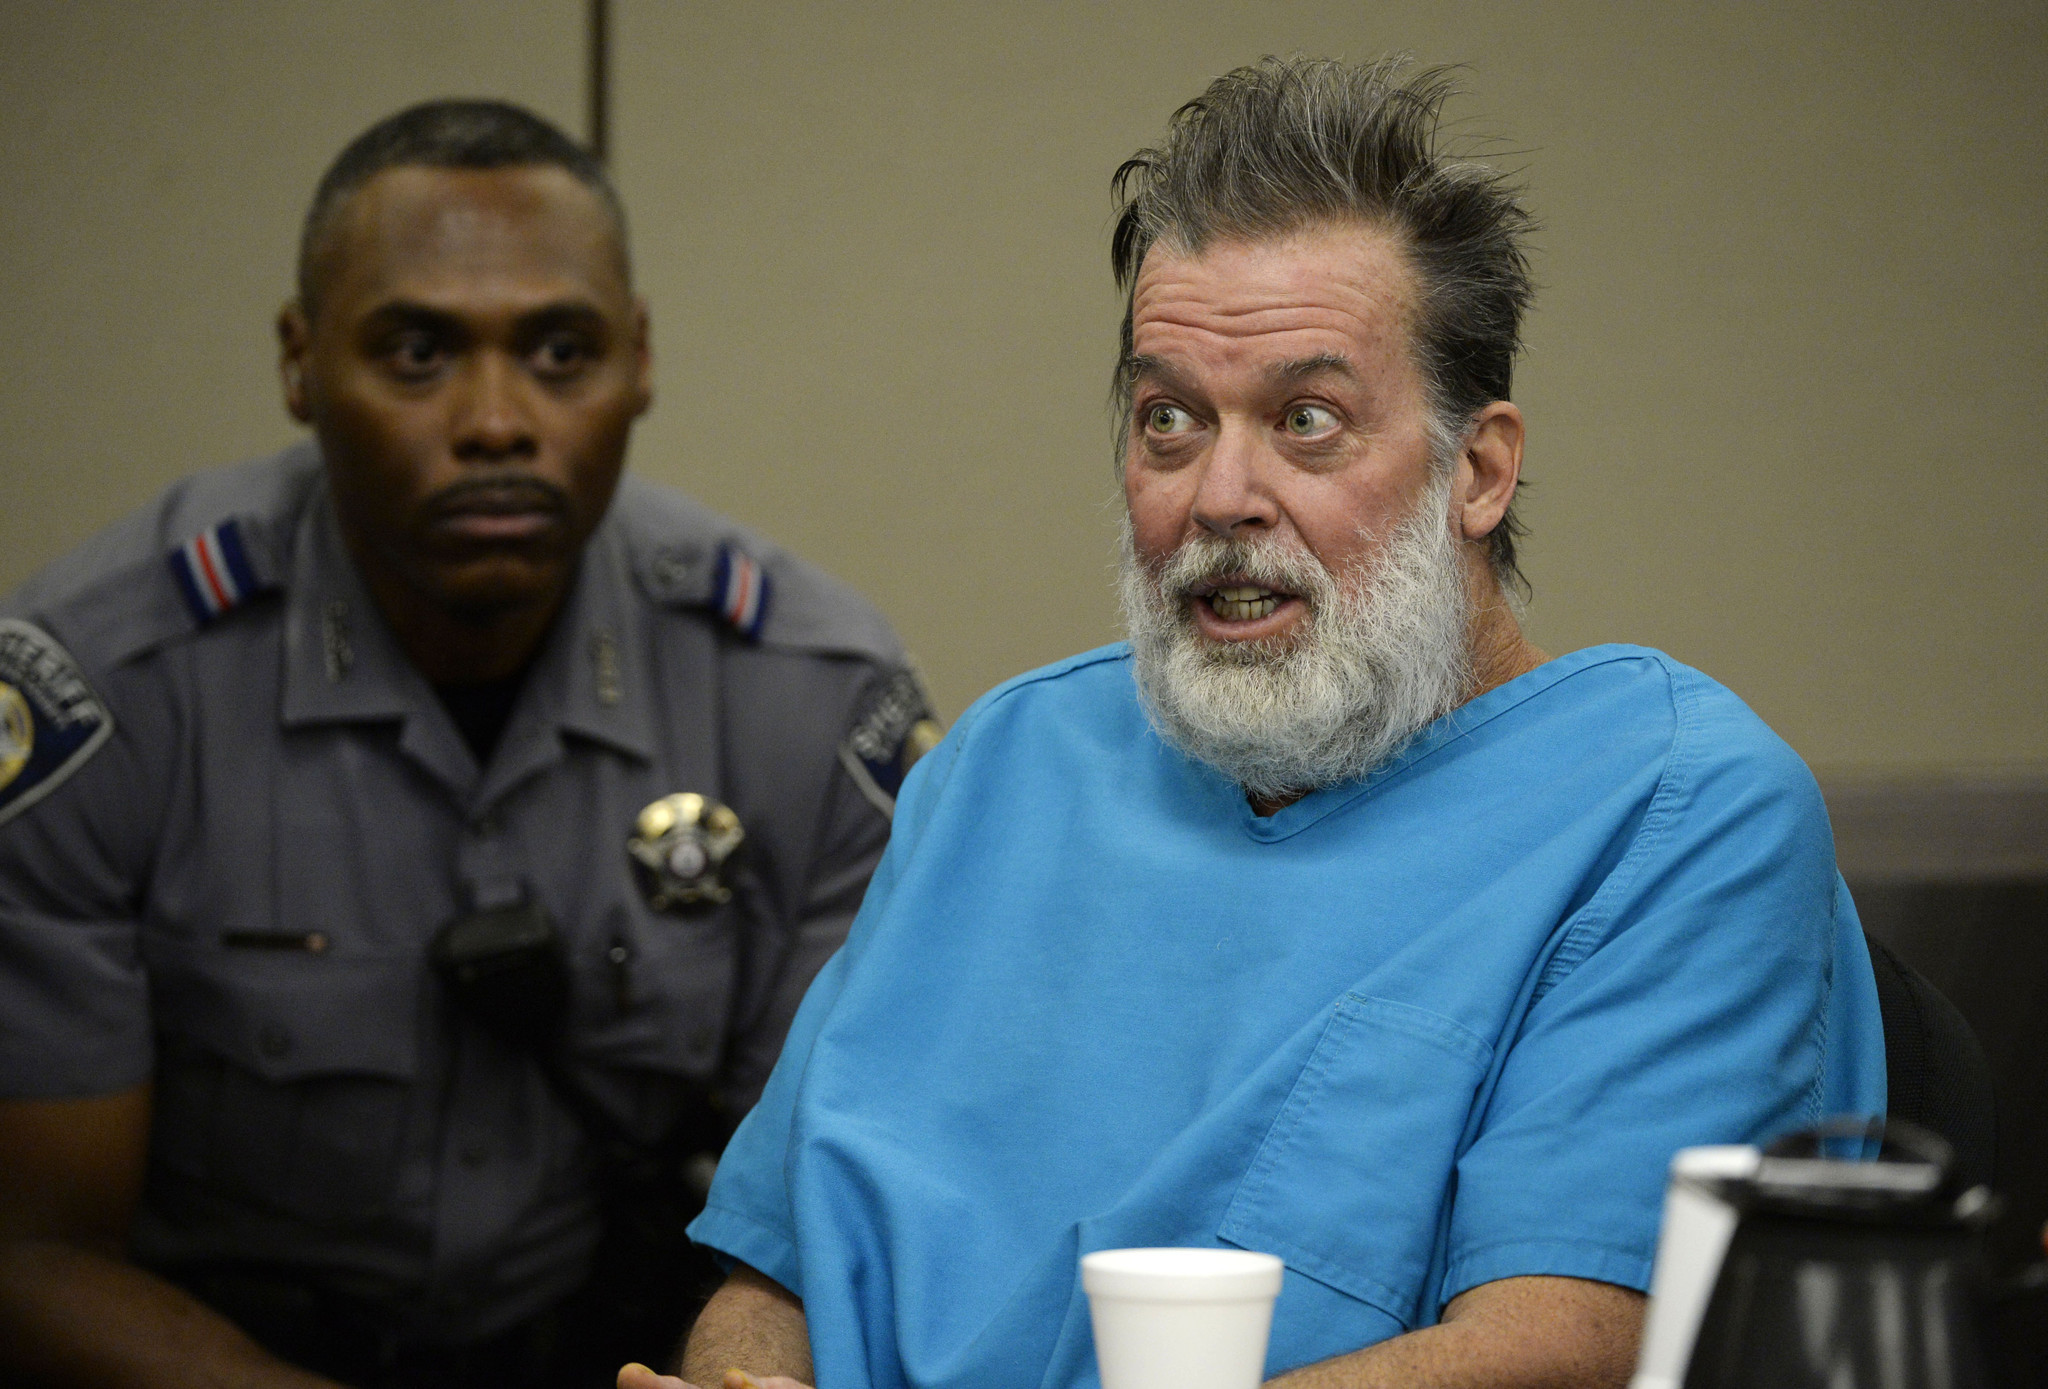 Man accused of killing 3 at Planned Parenthood clinic in 2015 faces new charges